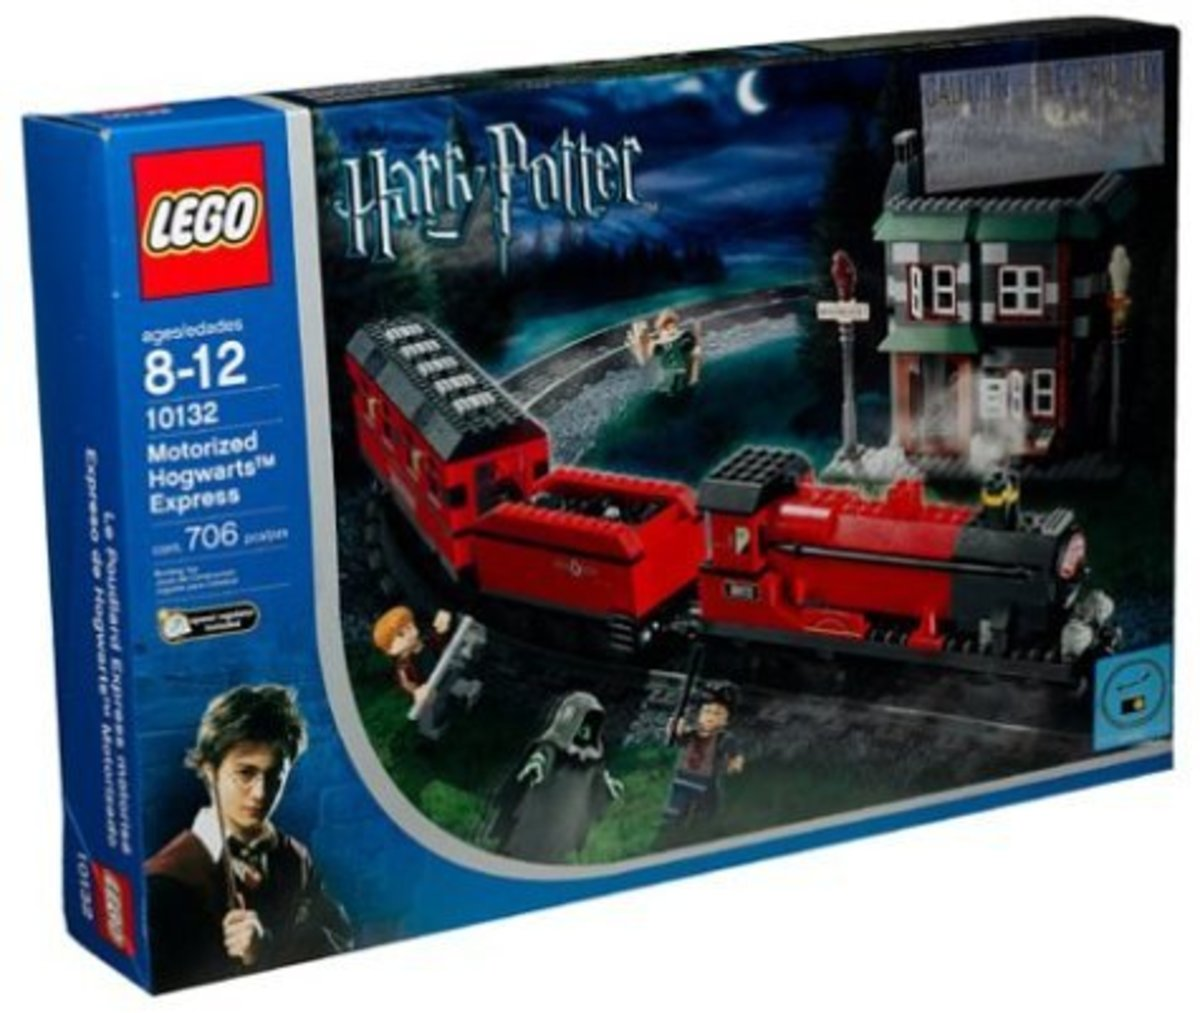 Lego Harry Potter Motorized Hogwarts Express (10132)